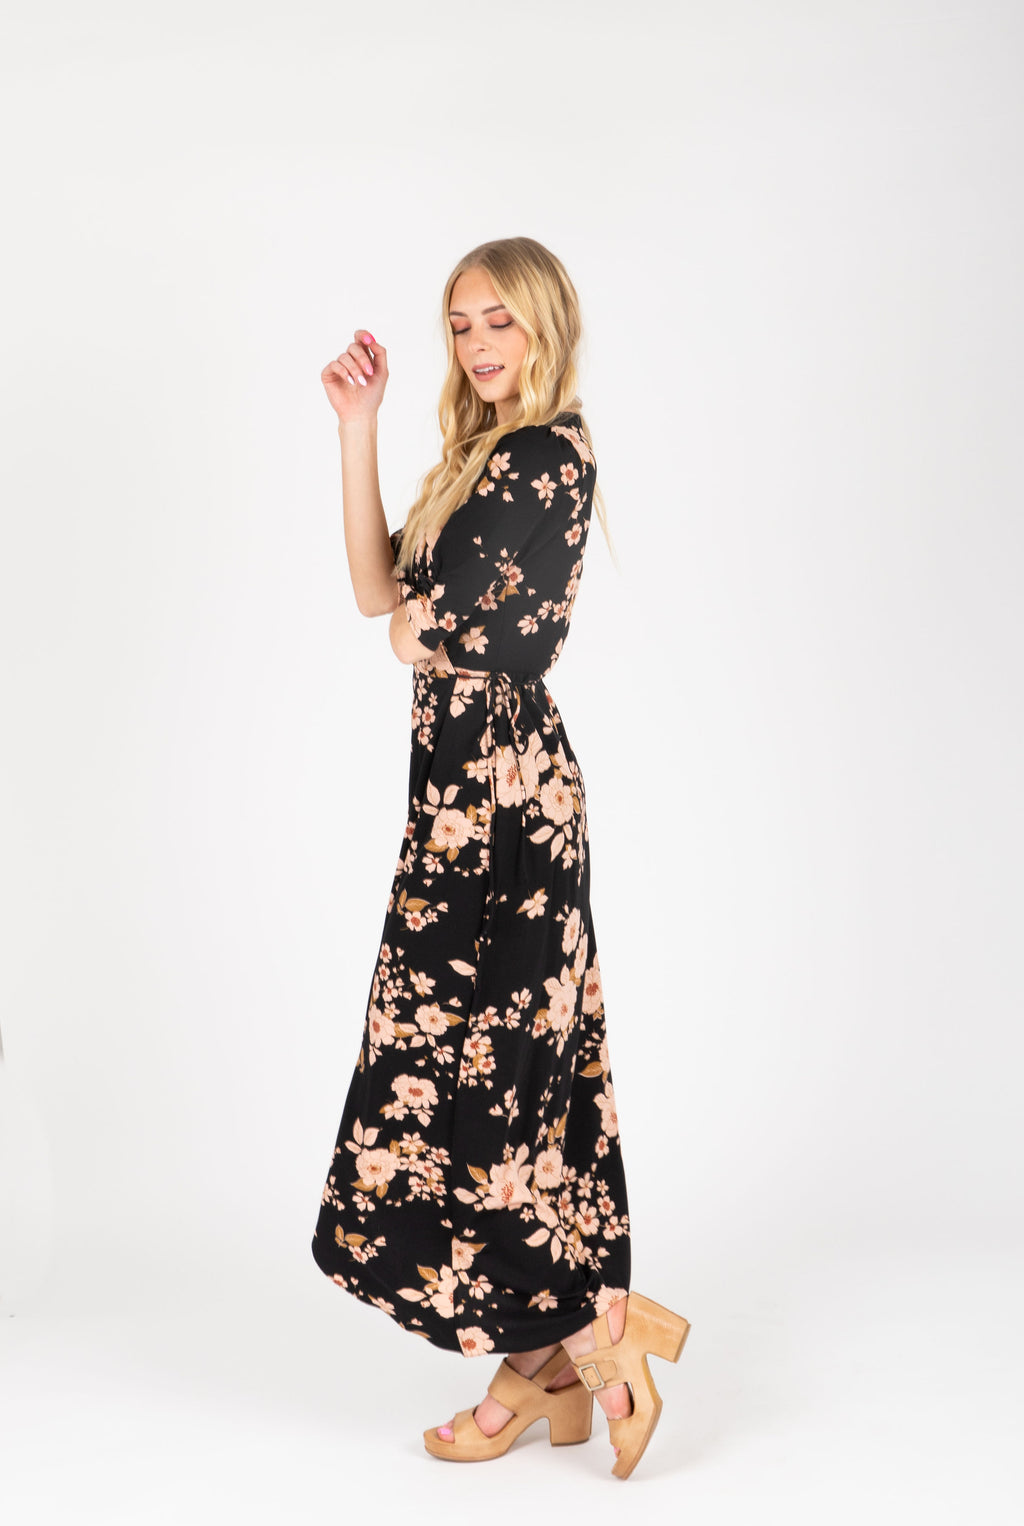 The Mattie Floral Wrap Dress in Black, studio shoot; side view